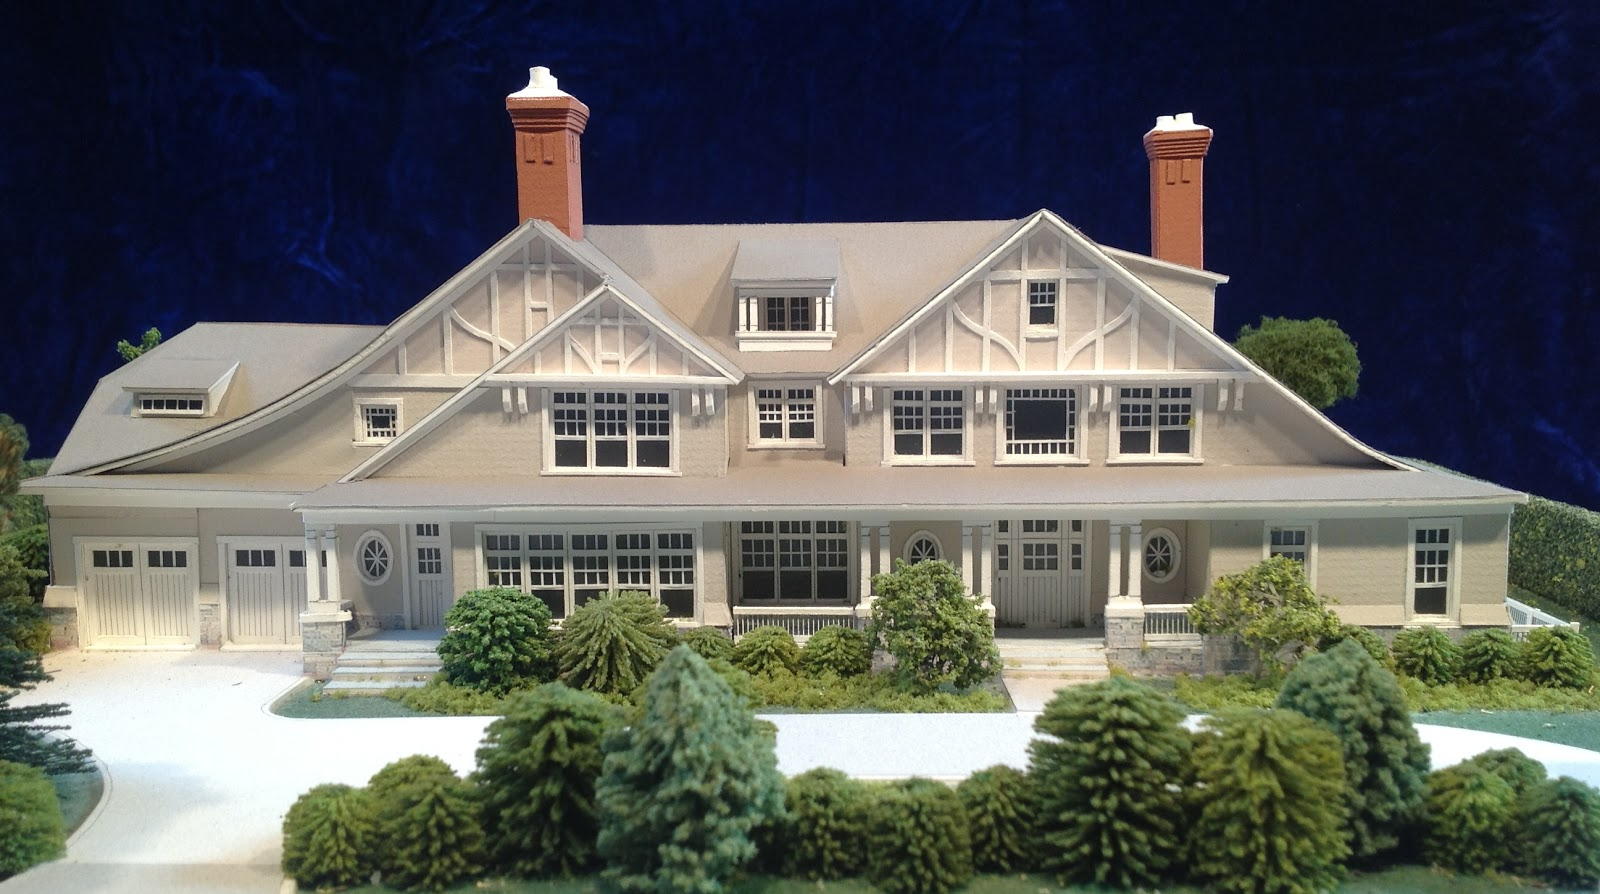 Architectural house models of houses in the hamptons long for The model house